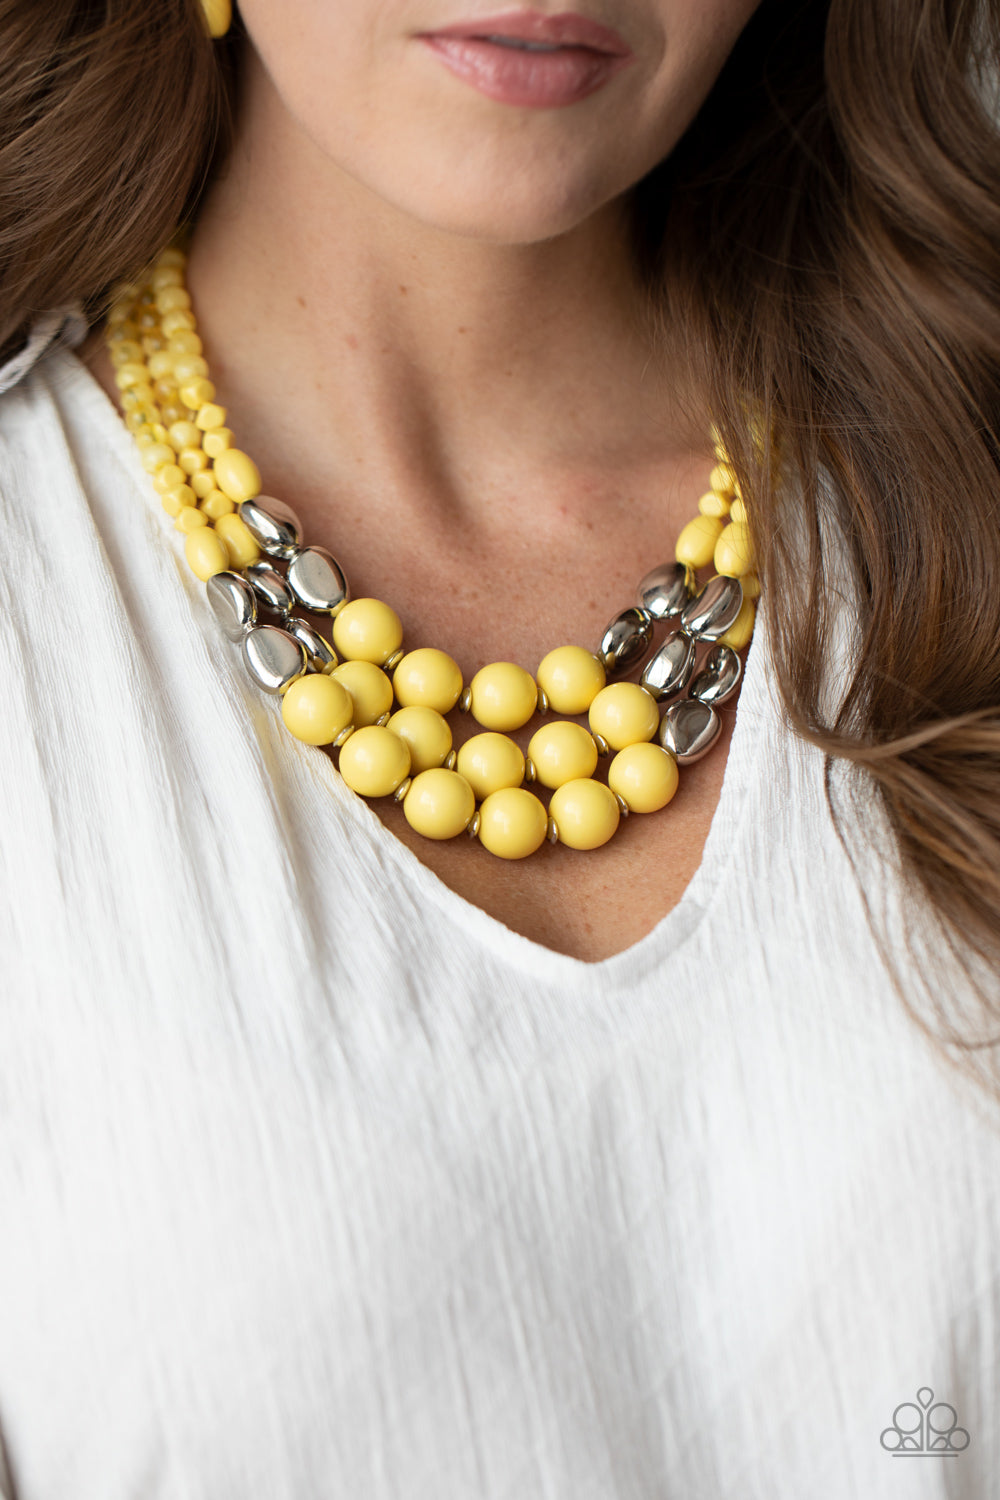 Paparazzi Jewelry & Accessories - Flamingo Flamboyance - Yellow Necklace. Bling By Titia Boutique